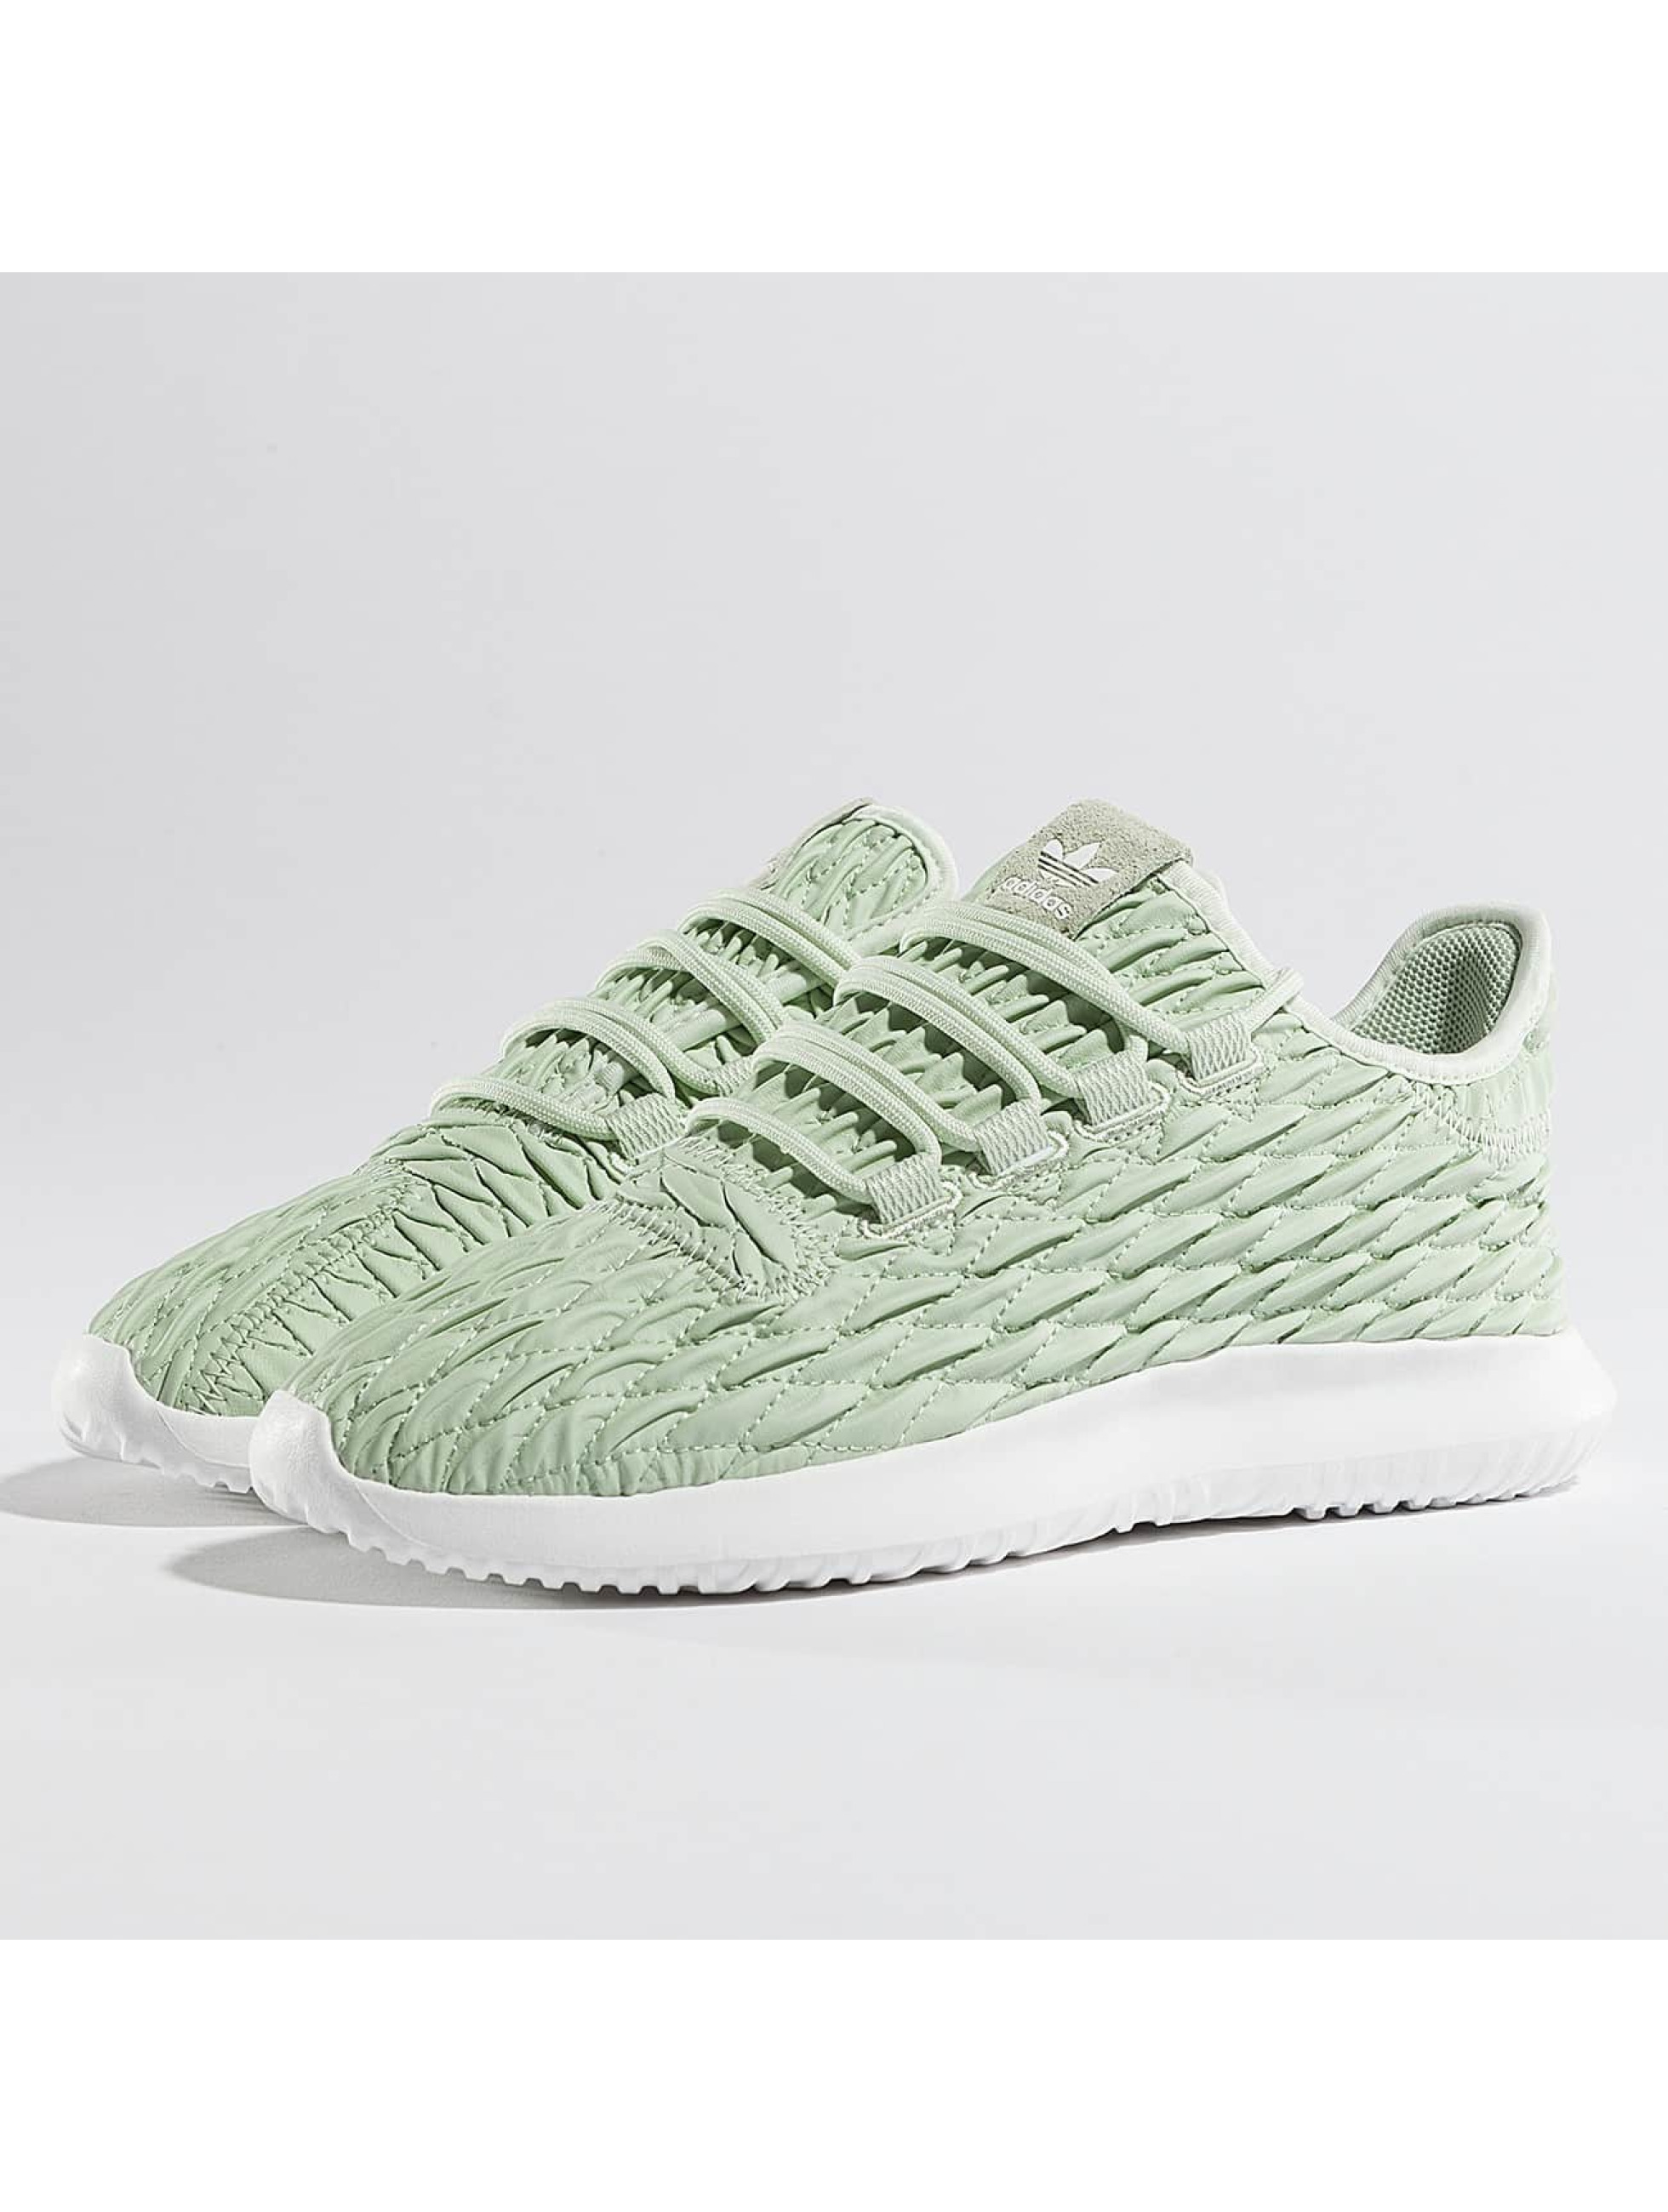 adidas Frauen Sneaker Tubular Shadow W in grün